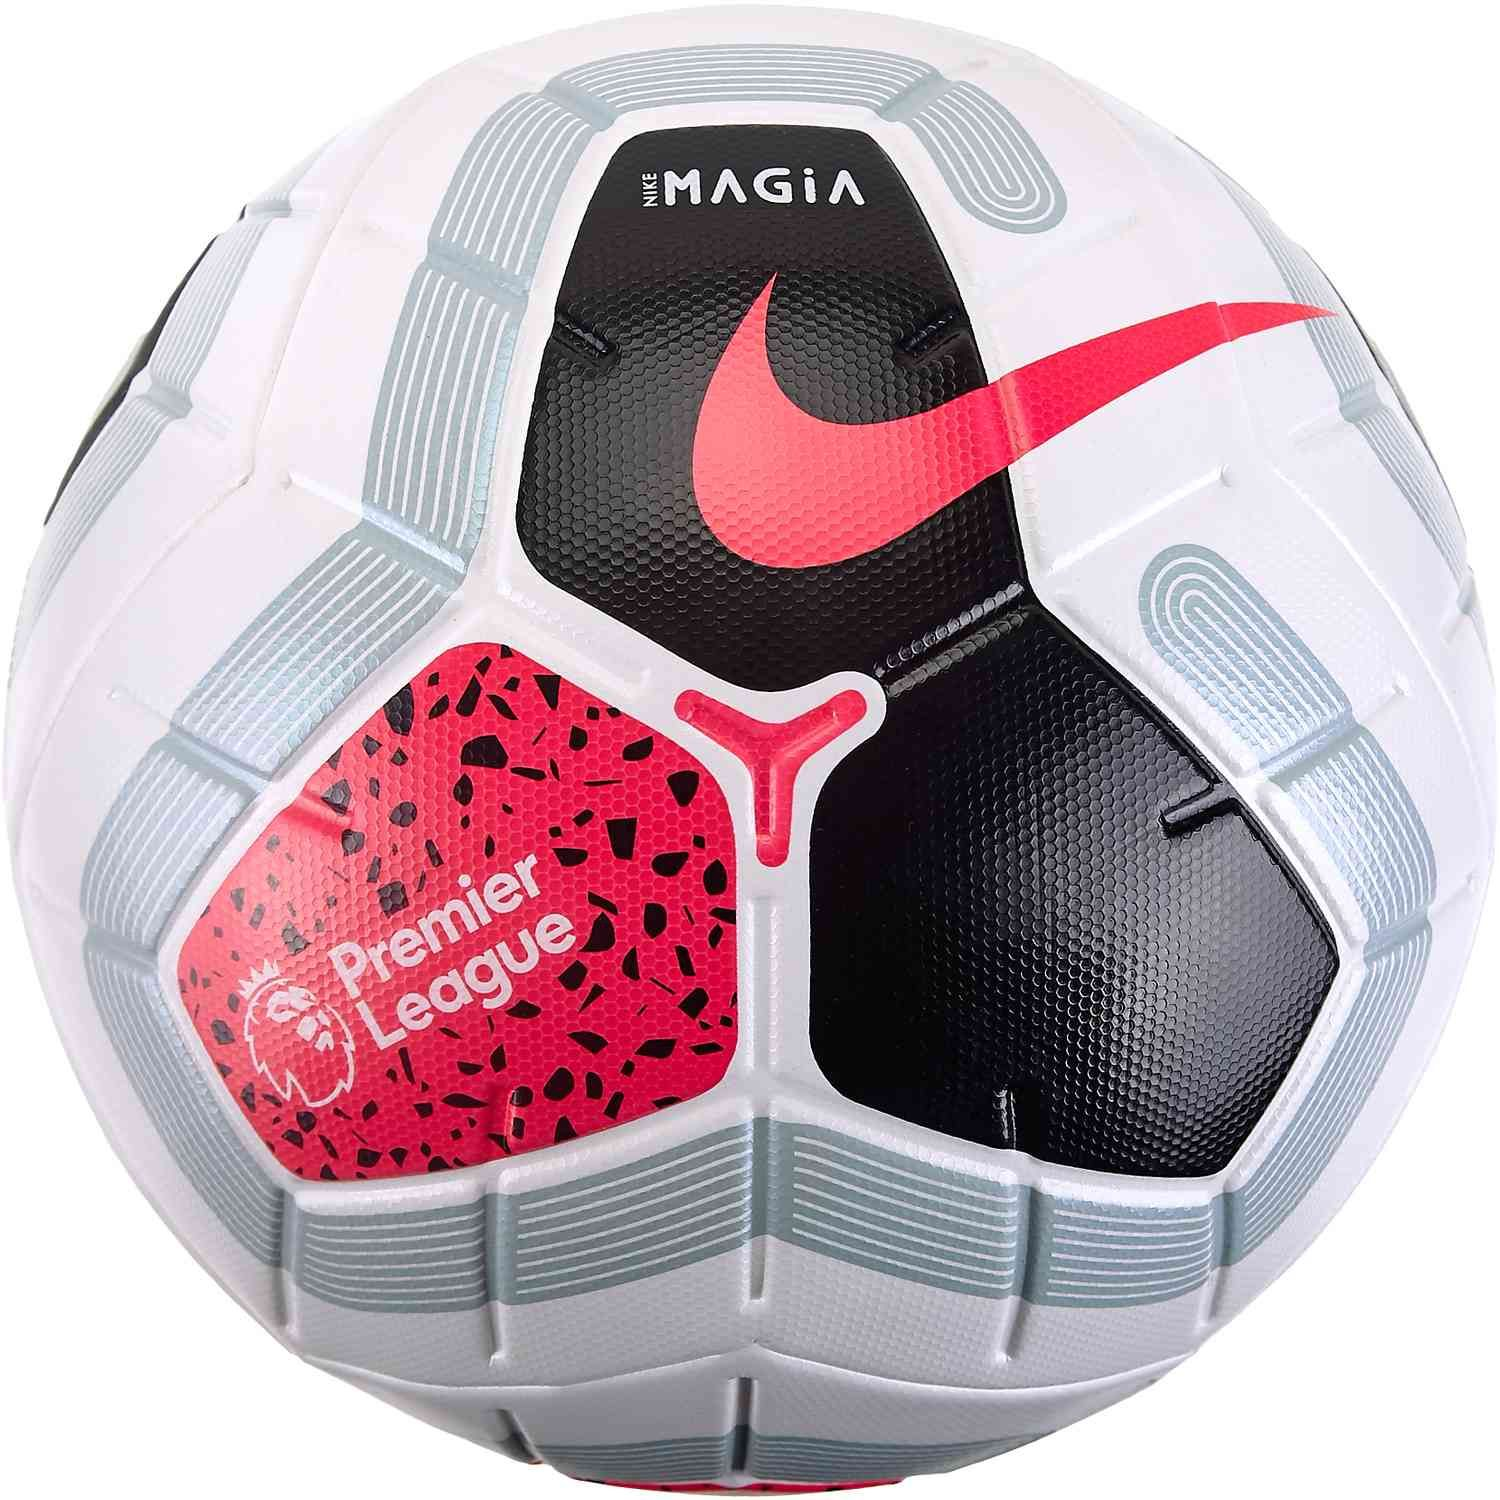 Nike Premier League Magia Match Soccer Ball 2019 20 Soccerpro Soccer Ball Soccer Soccer Kits